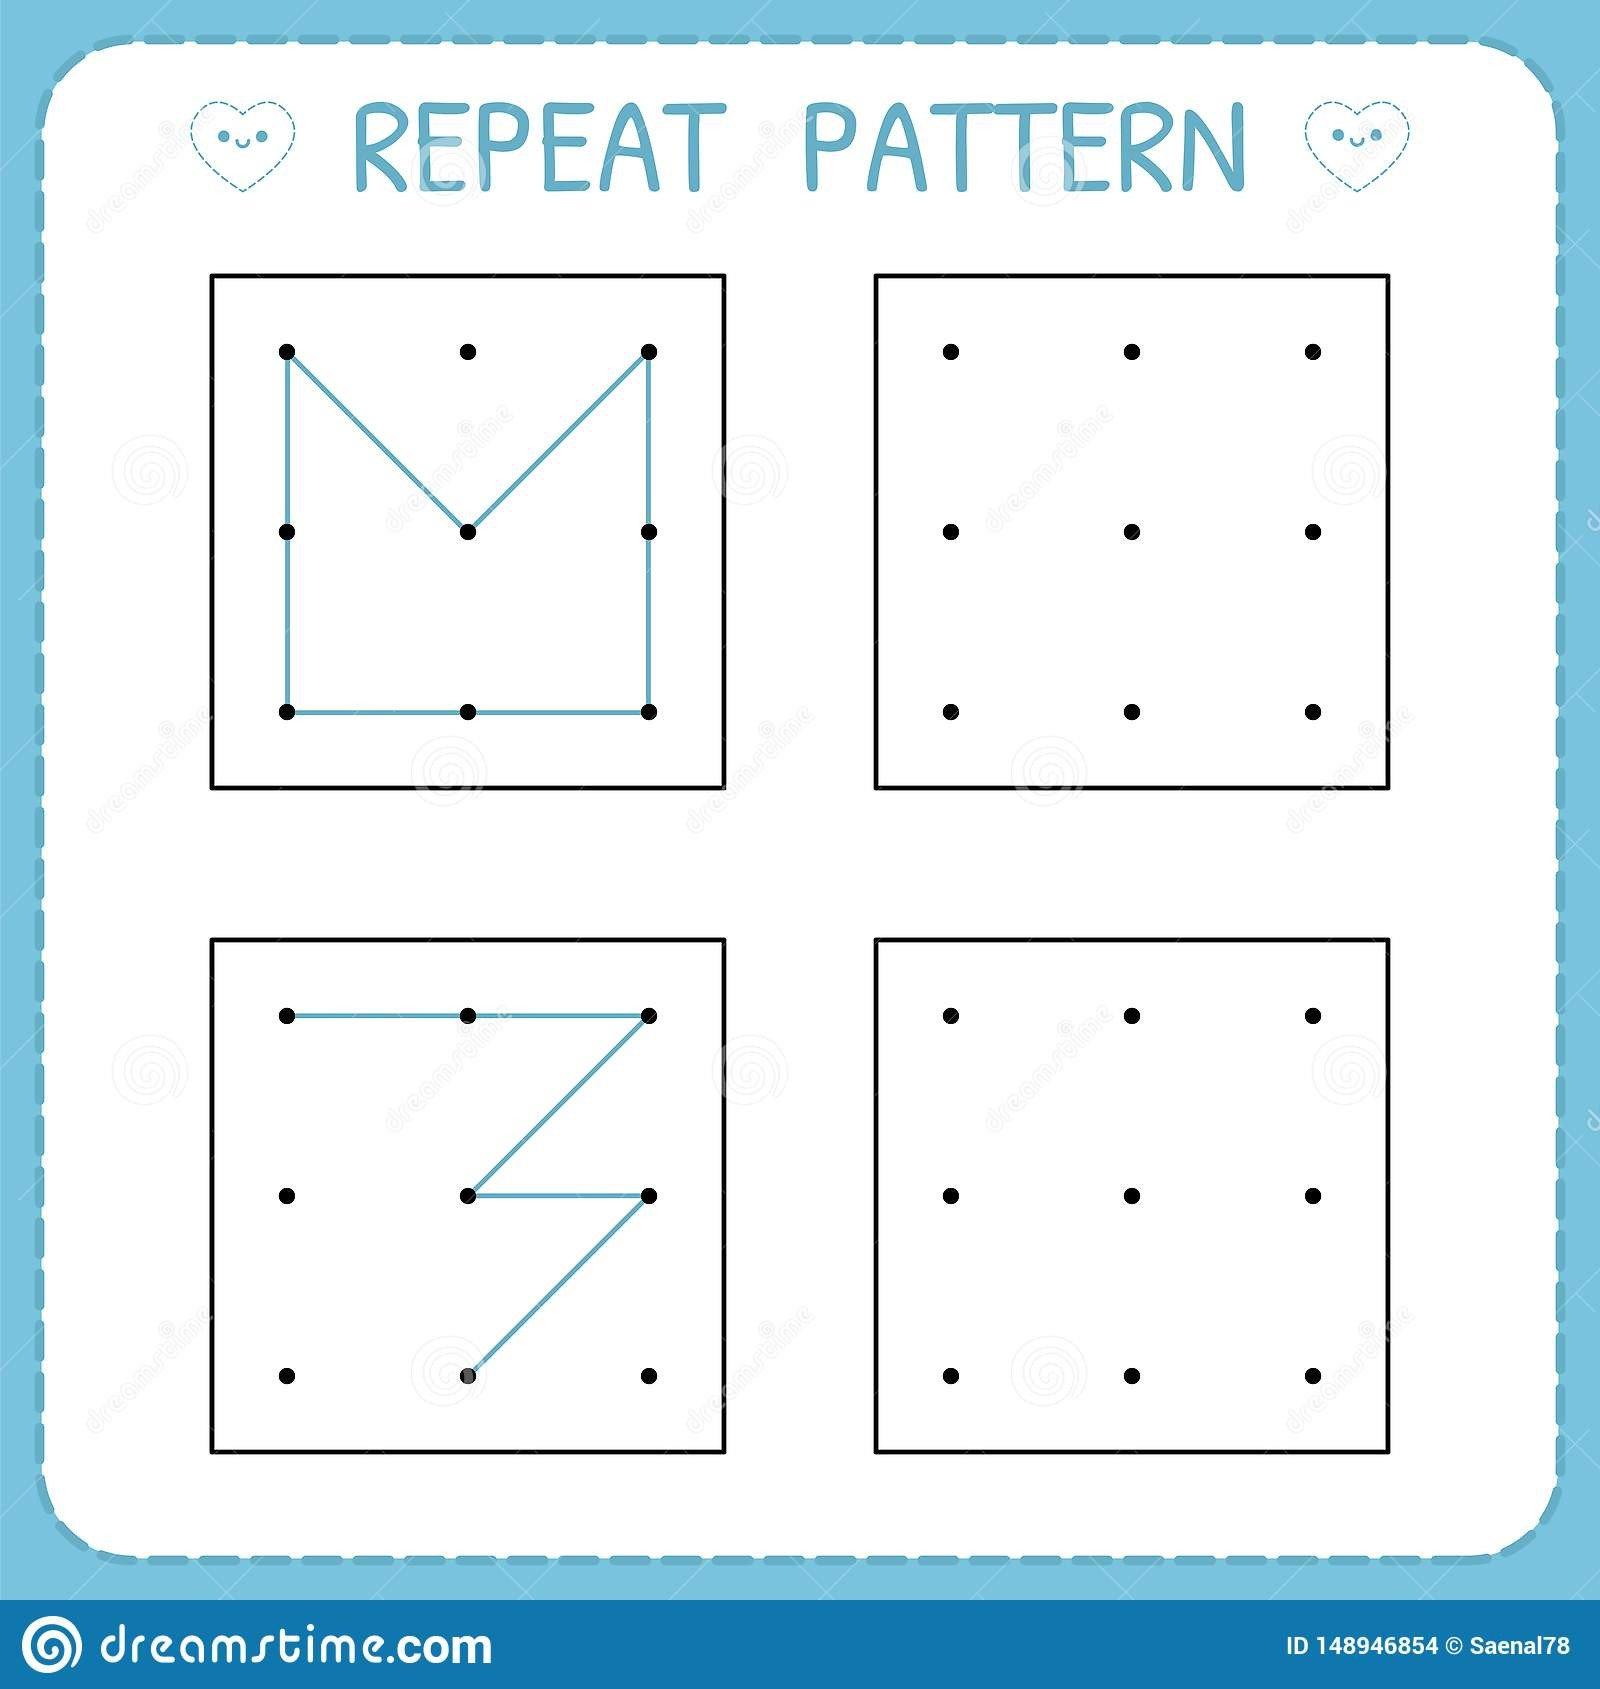 Repeating Patterns Worksheets Math Worksheet Repeat Pattern Working Pages for Kids